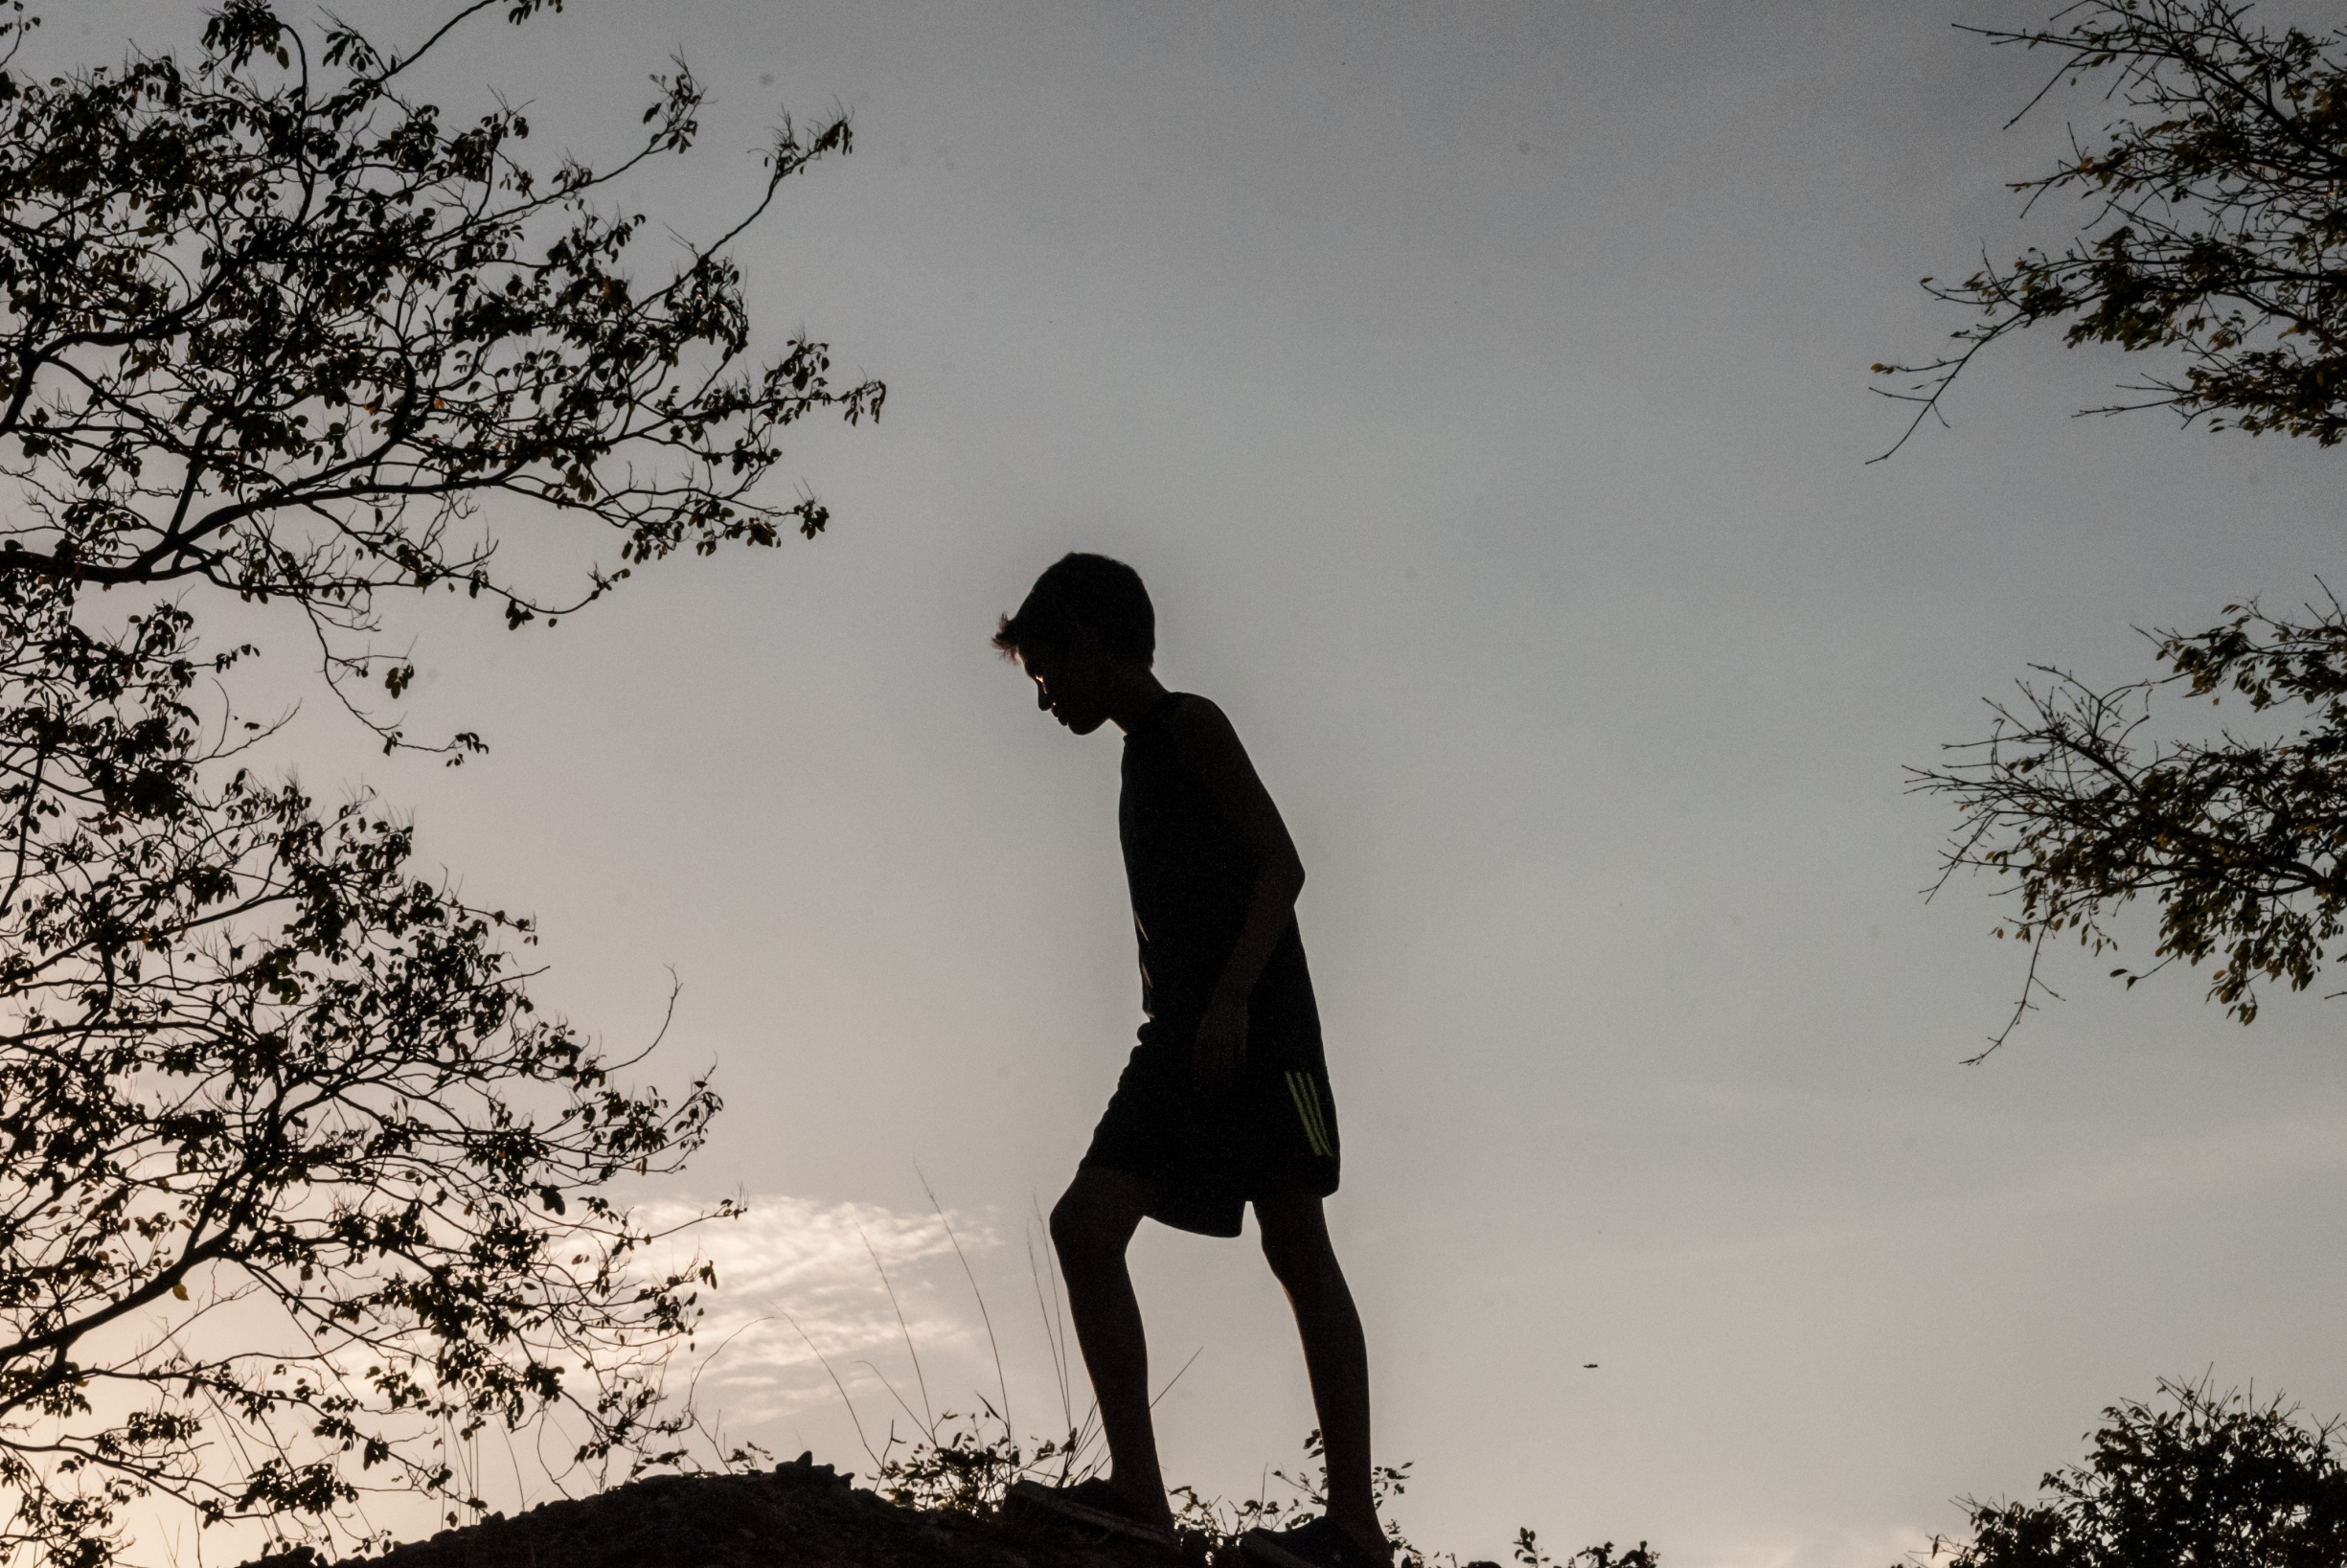 Free download high resolution image - free image free photo free stock image public domain picture -Child climbing Silhouette